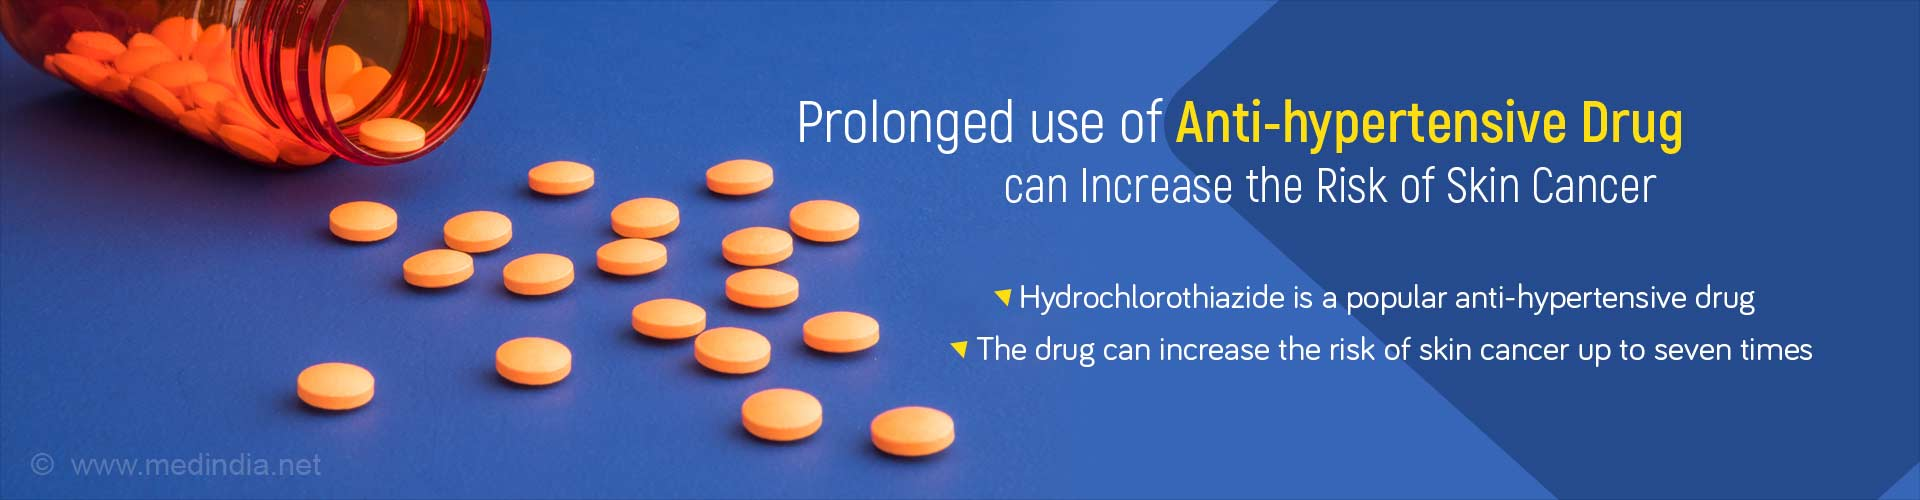 Blood Pressure Medication Hydrochlorothiazide Linked to Skin Cancer